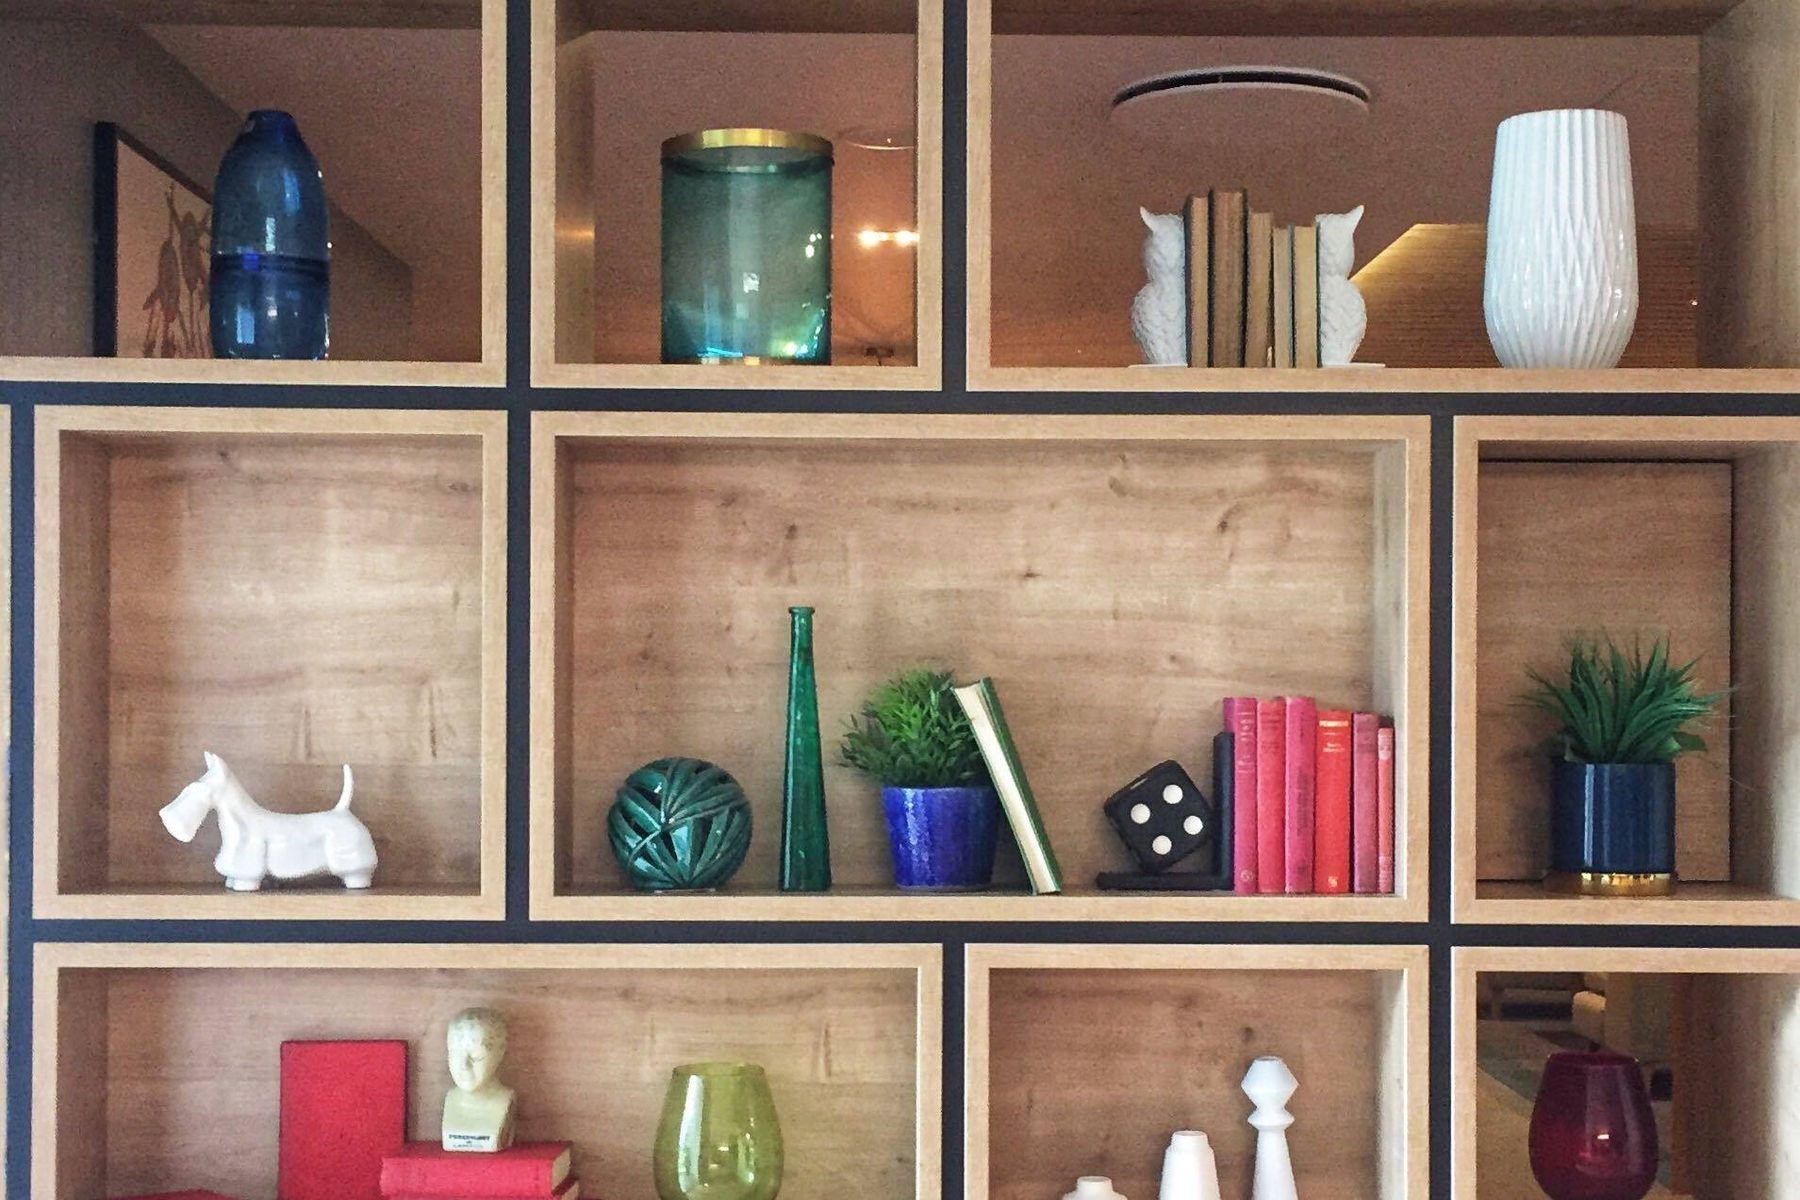 bookshelf with decorative objects